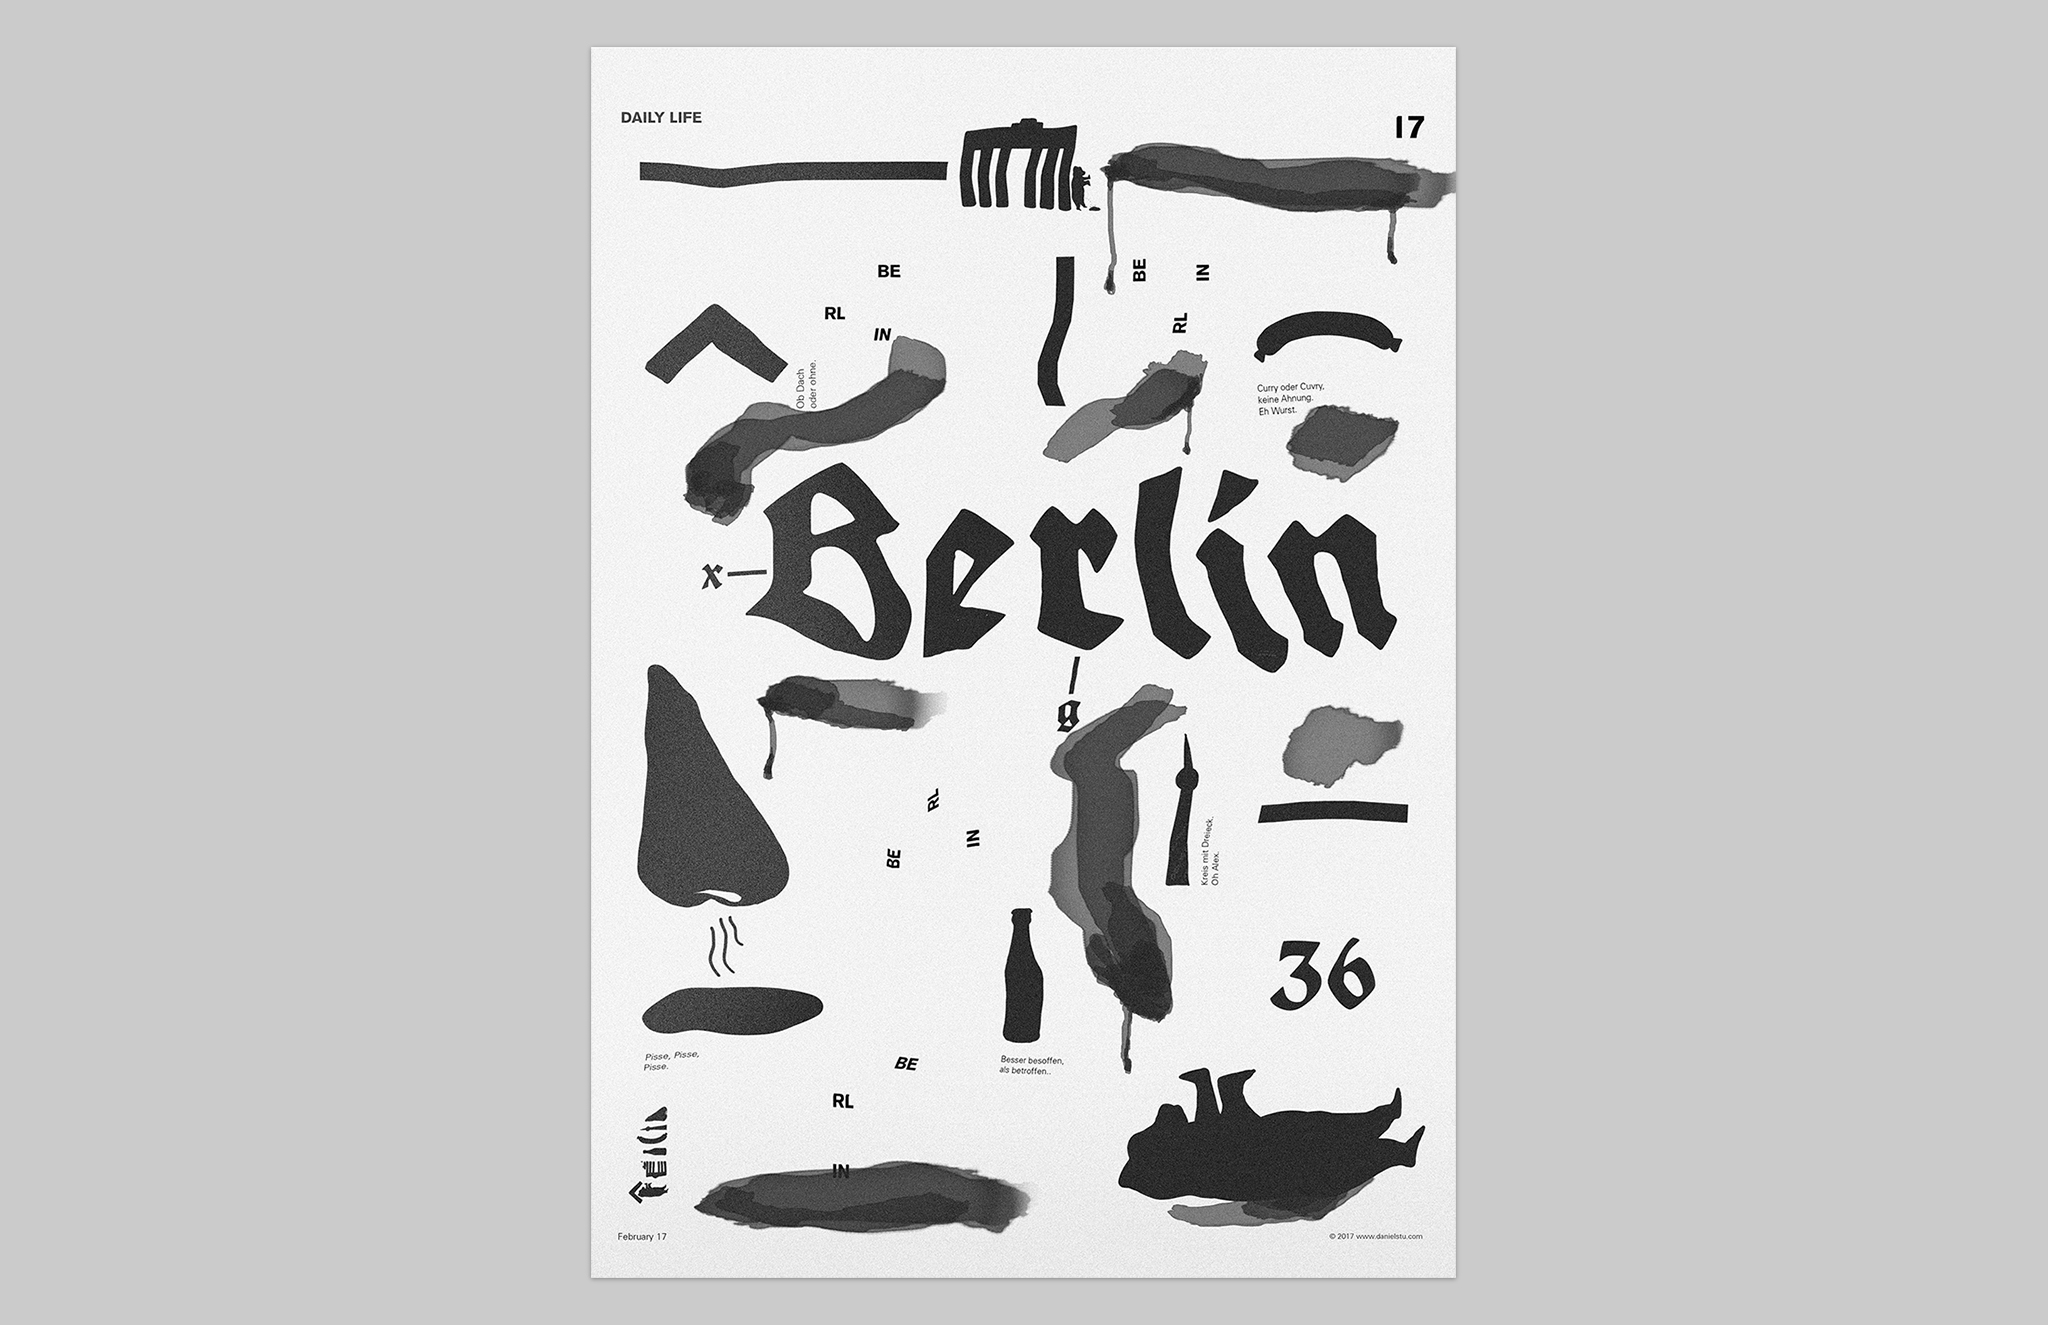 Daniel-Stuhlpfarrer_Visual-Communication_Graphic-Design_Poster_Berlin-calling_Overview